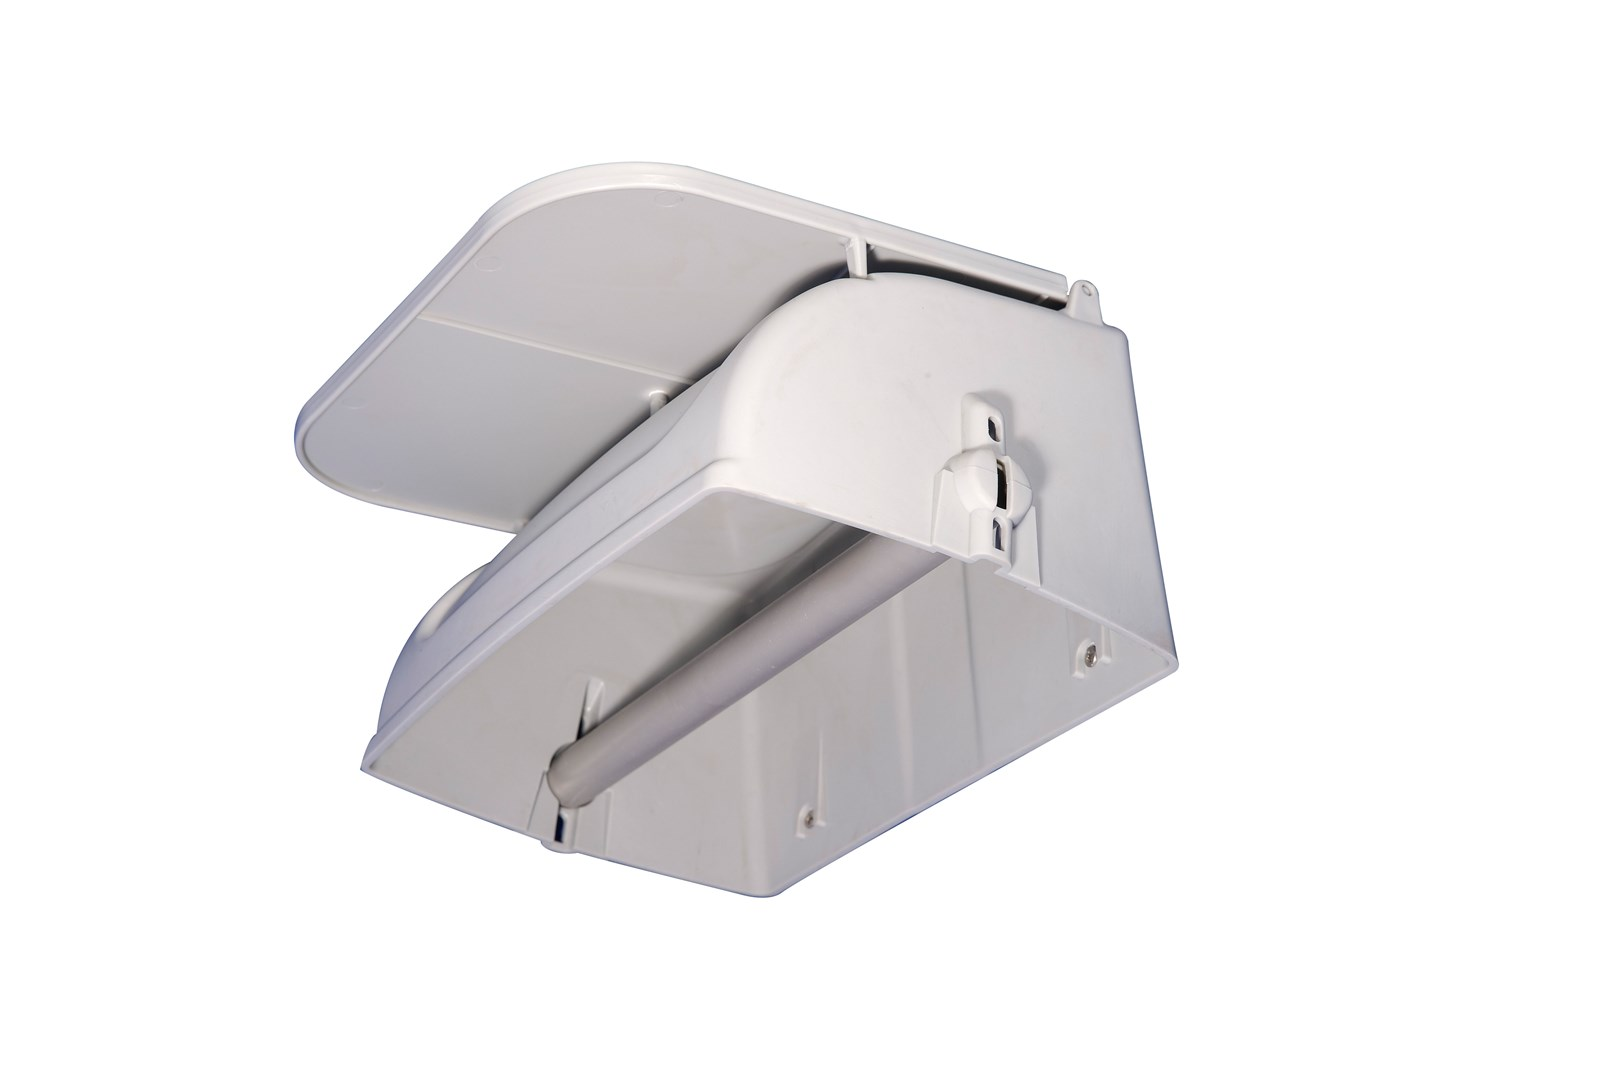 Wall Mounted Toilet Paper Rollers & Cloth Tray Serial No. G-313